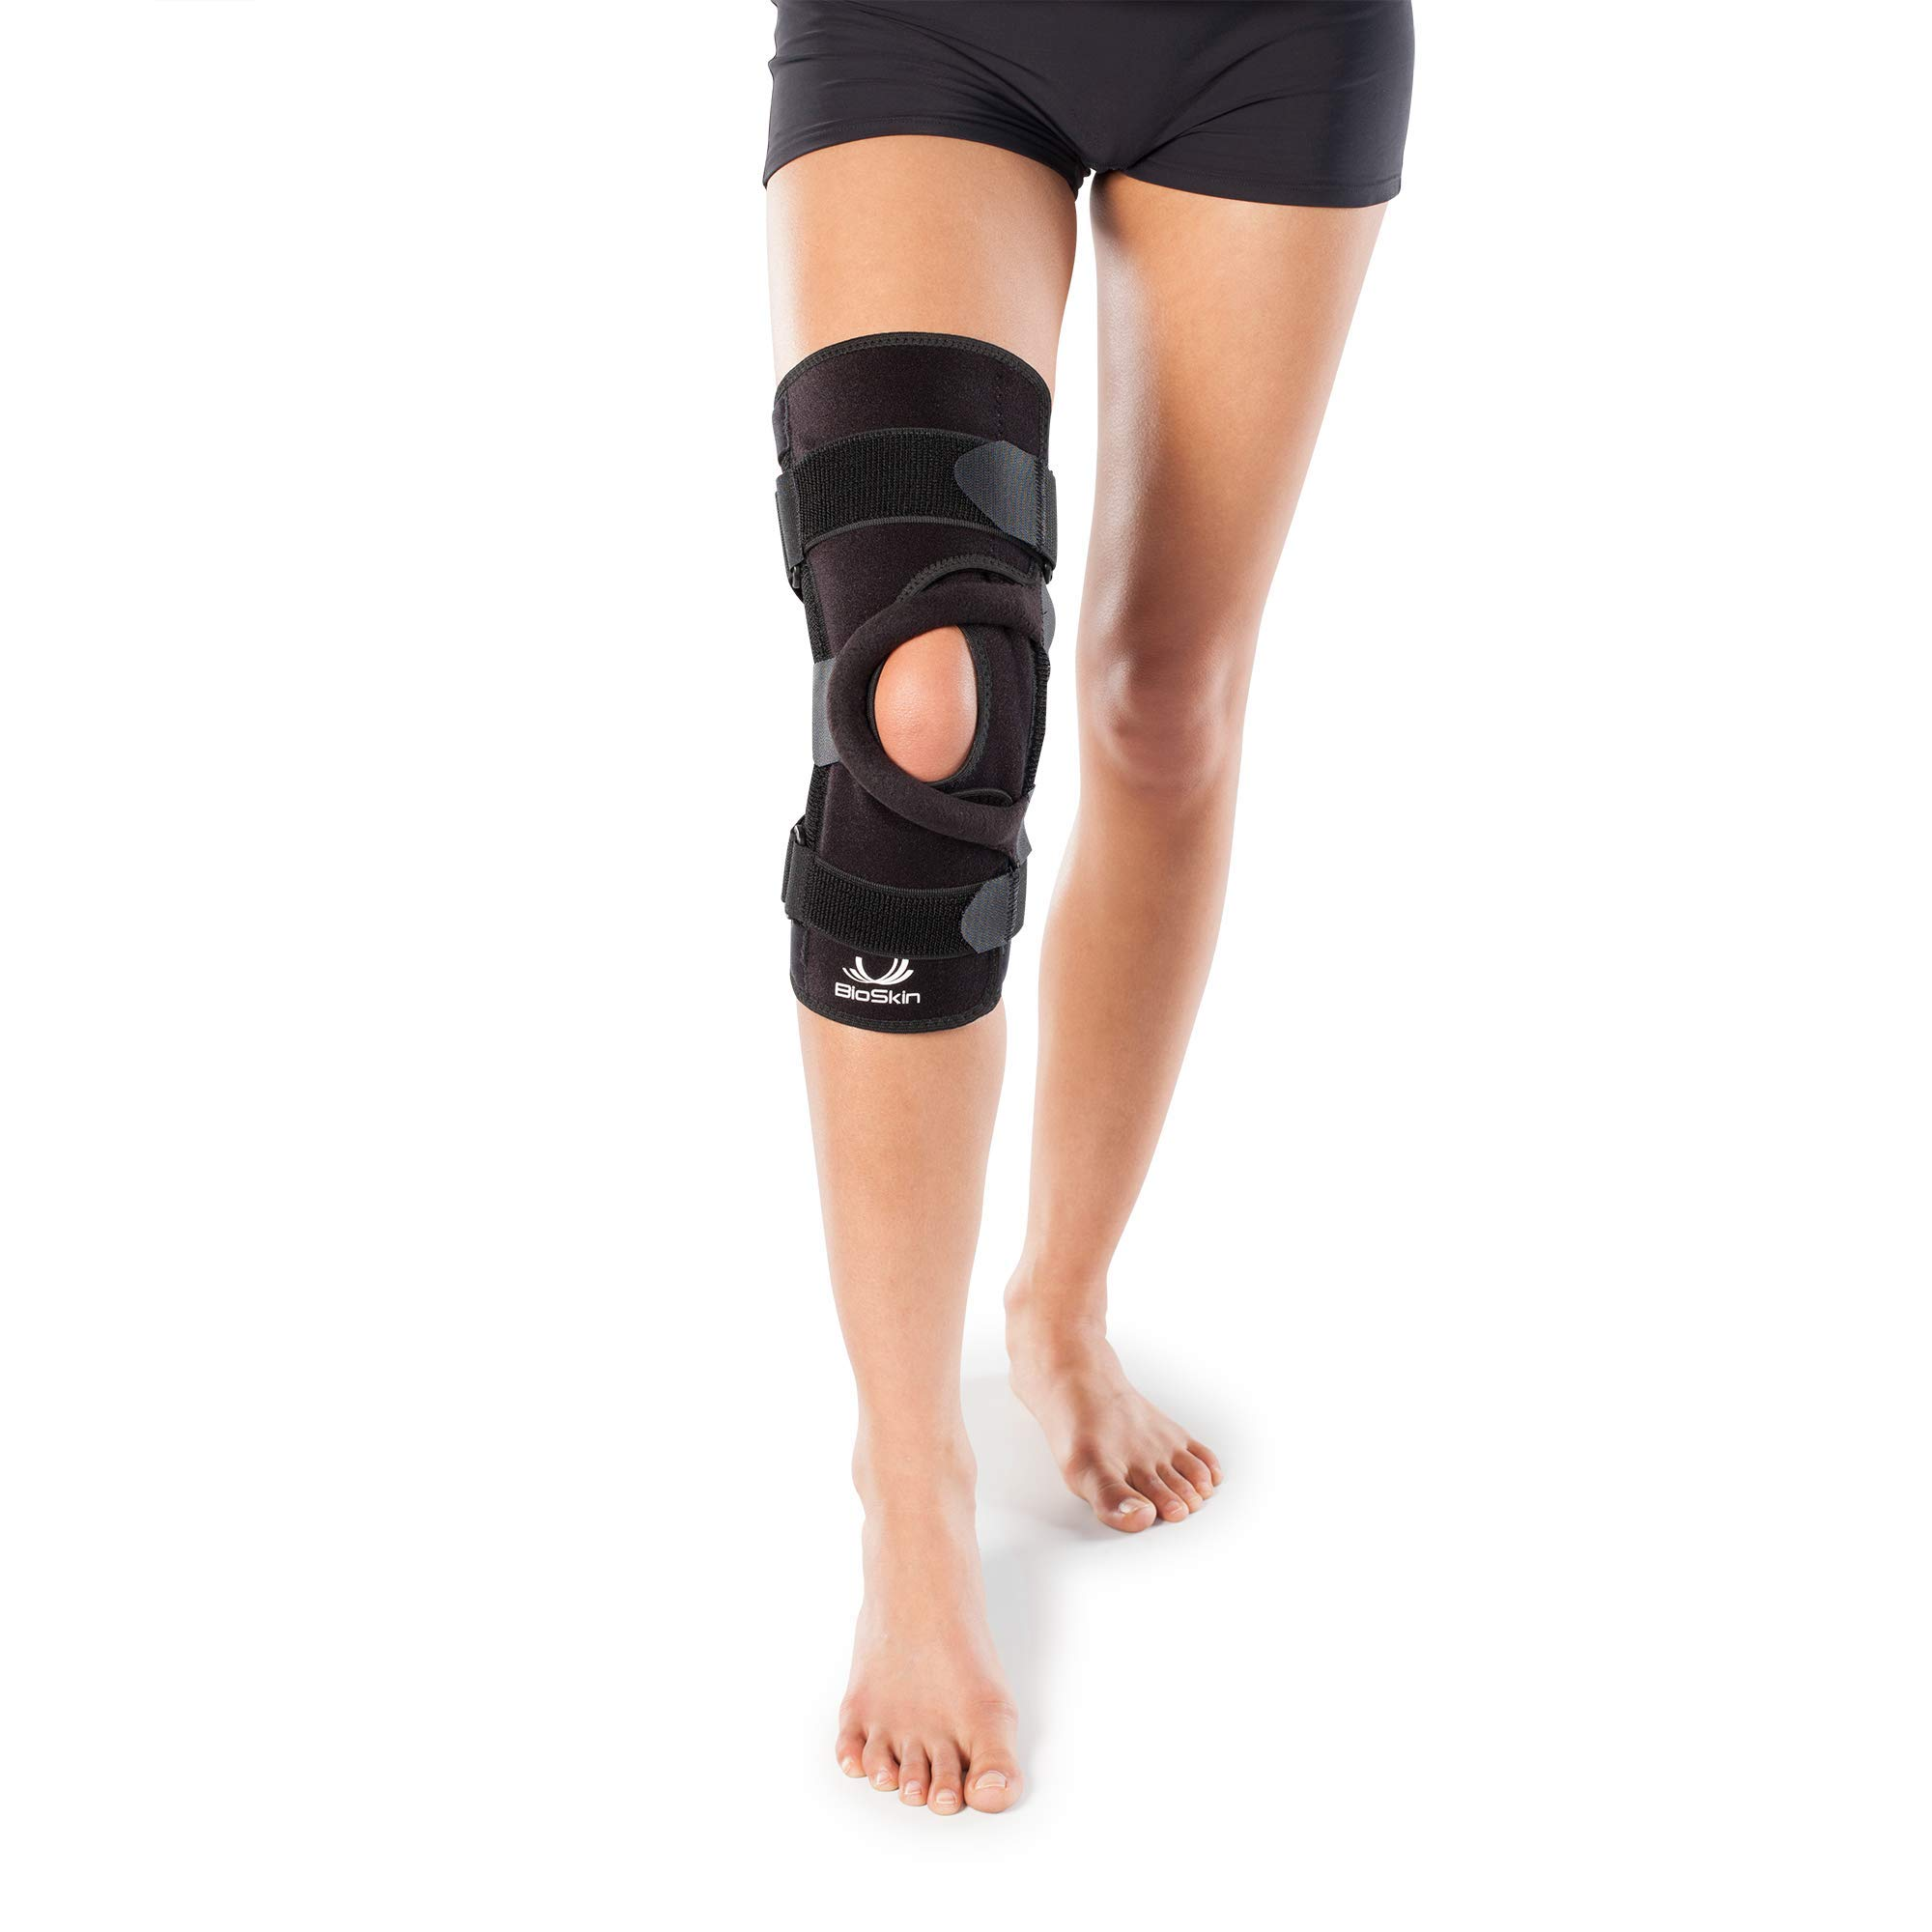 BIOSKIN Wrap Around Compression Supportive Knee Brace for Patellofemoral Pain and Patella Tracking Disorders - Q Brace (M) by BIOSKIN